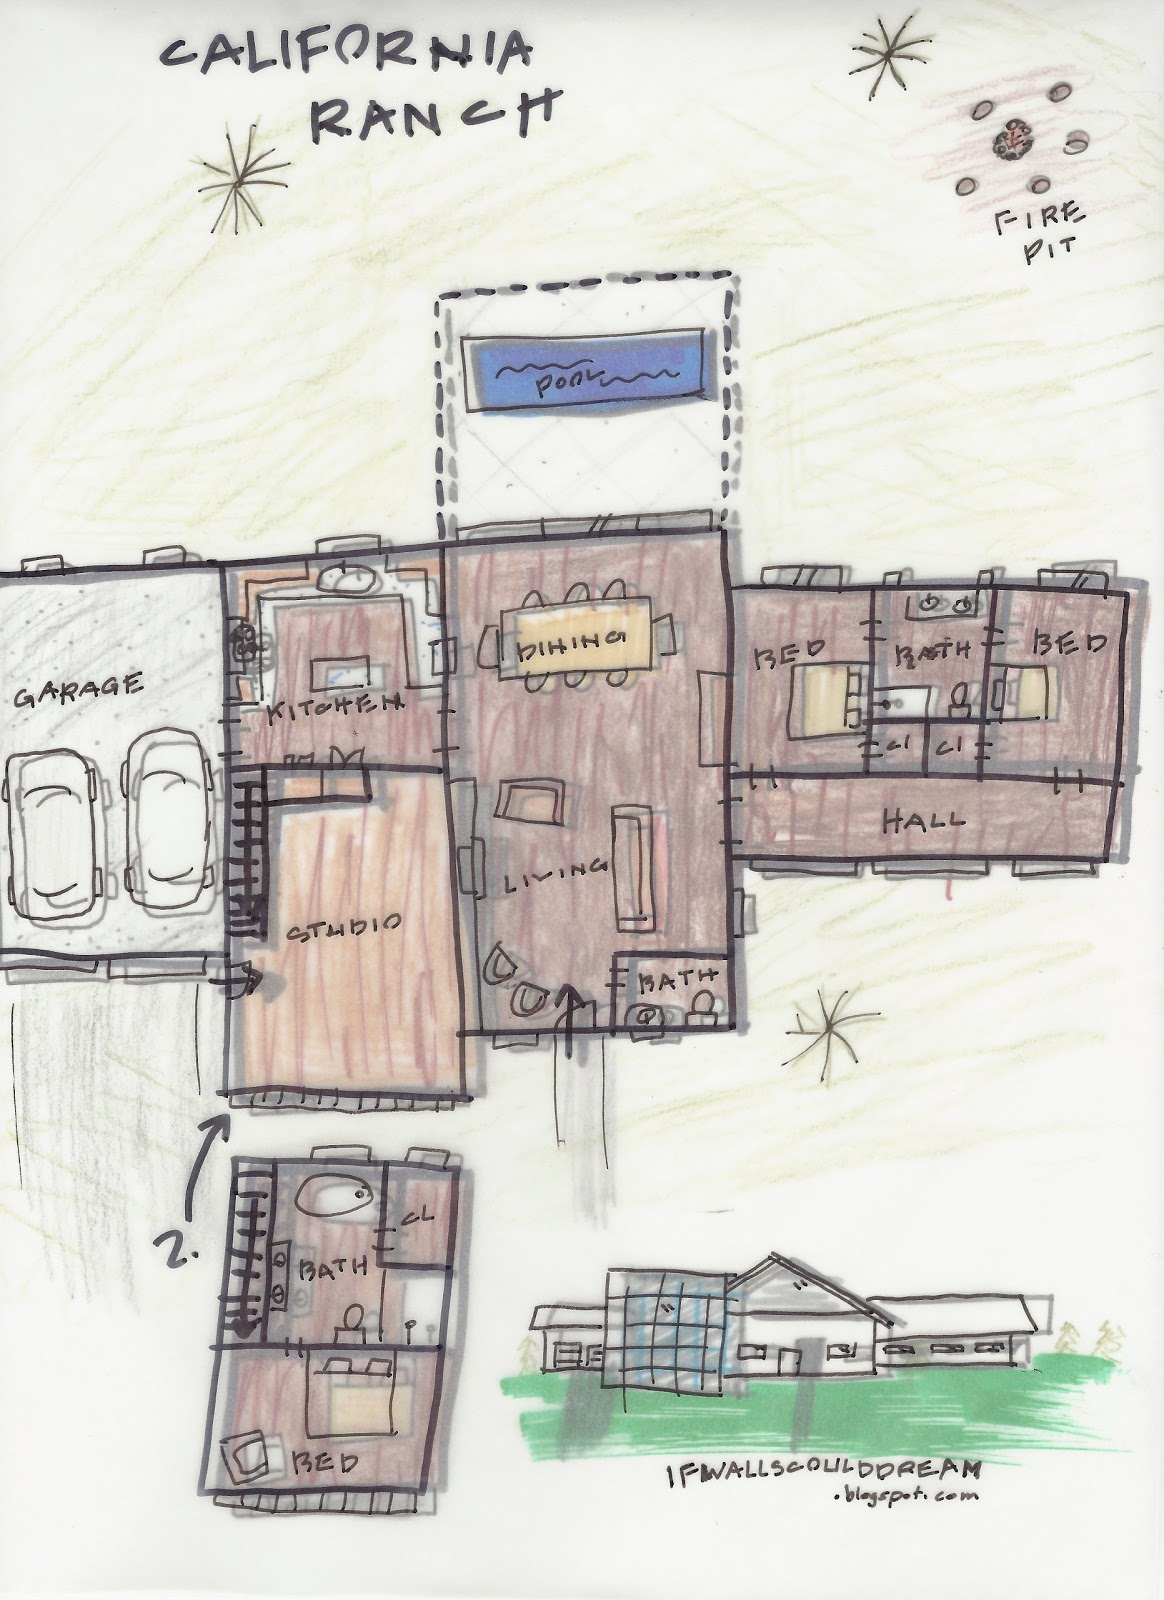 If walls could dream california ranch floor plan sketch for California ranch floor plans